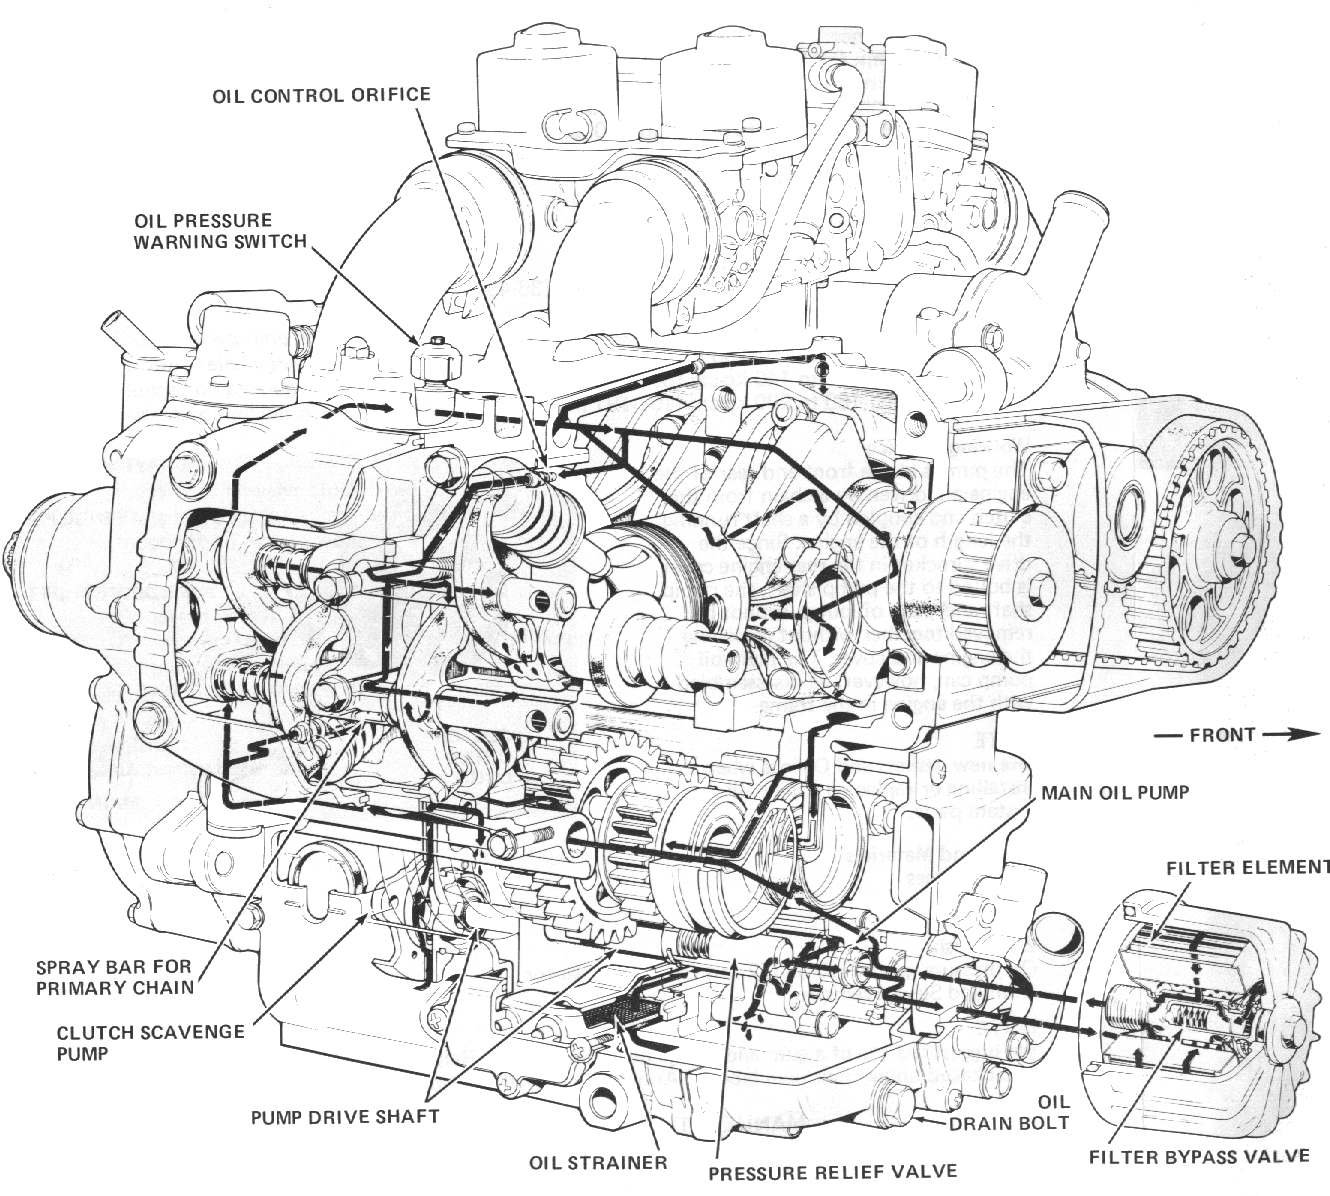 Motorcycle Engine Drawing At Free For Personal Use Diagram Art 1330x1196 Dans Four Stroke Oil Flow